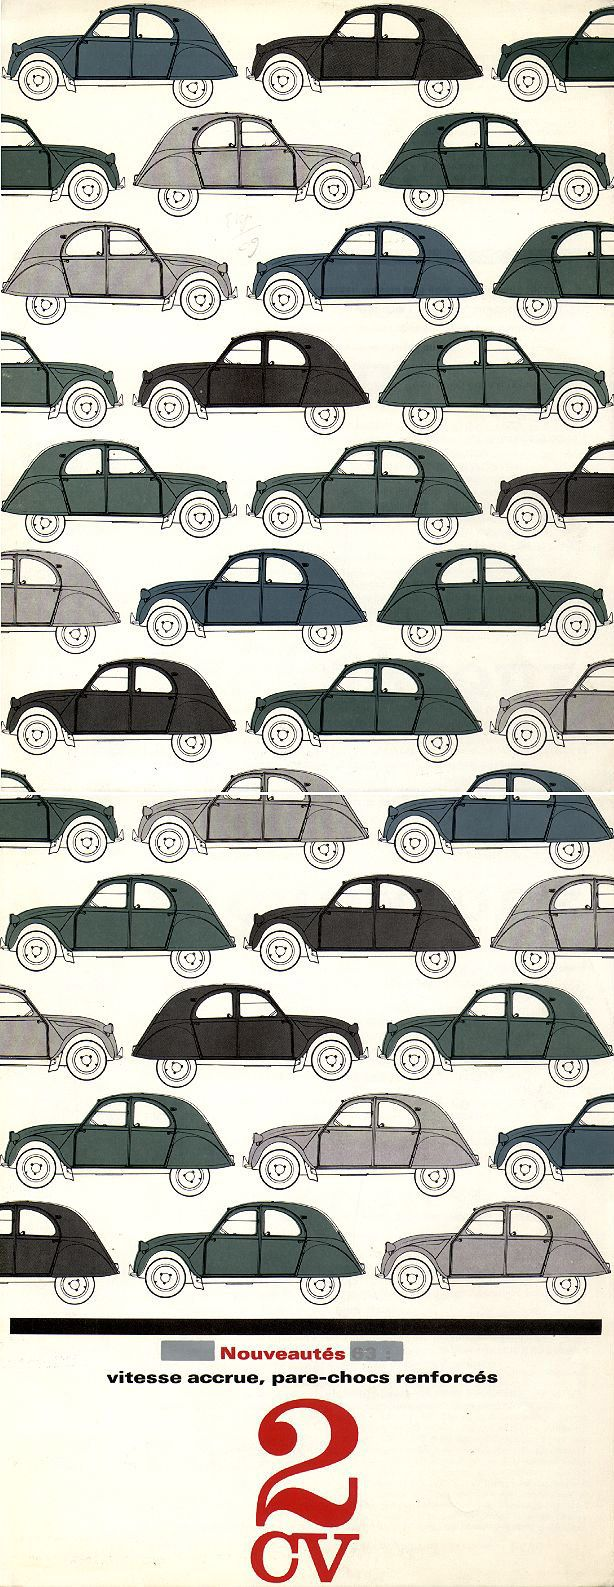 Citroën CV  Waiting For A Board  Pinterest Best Cars - Best automobile graphics and patterns